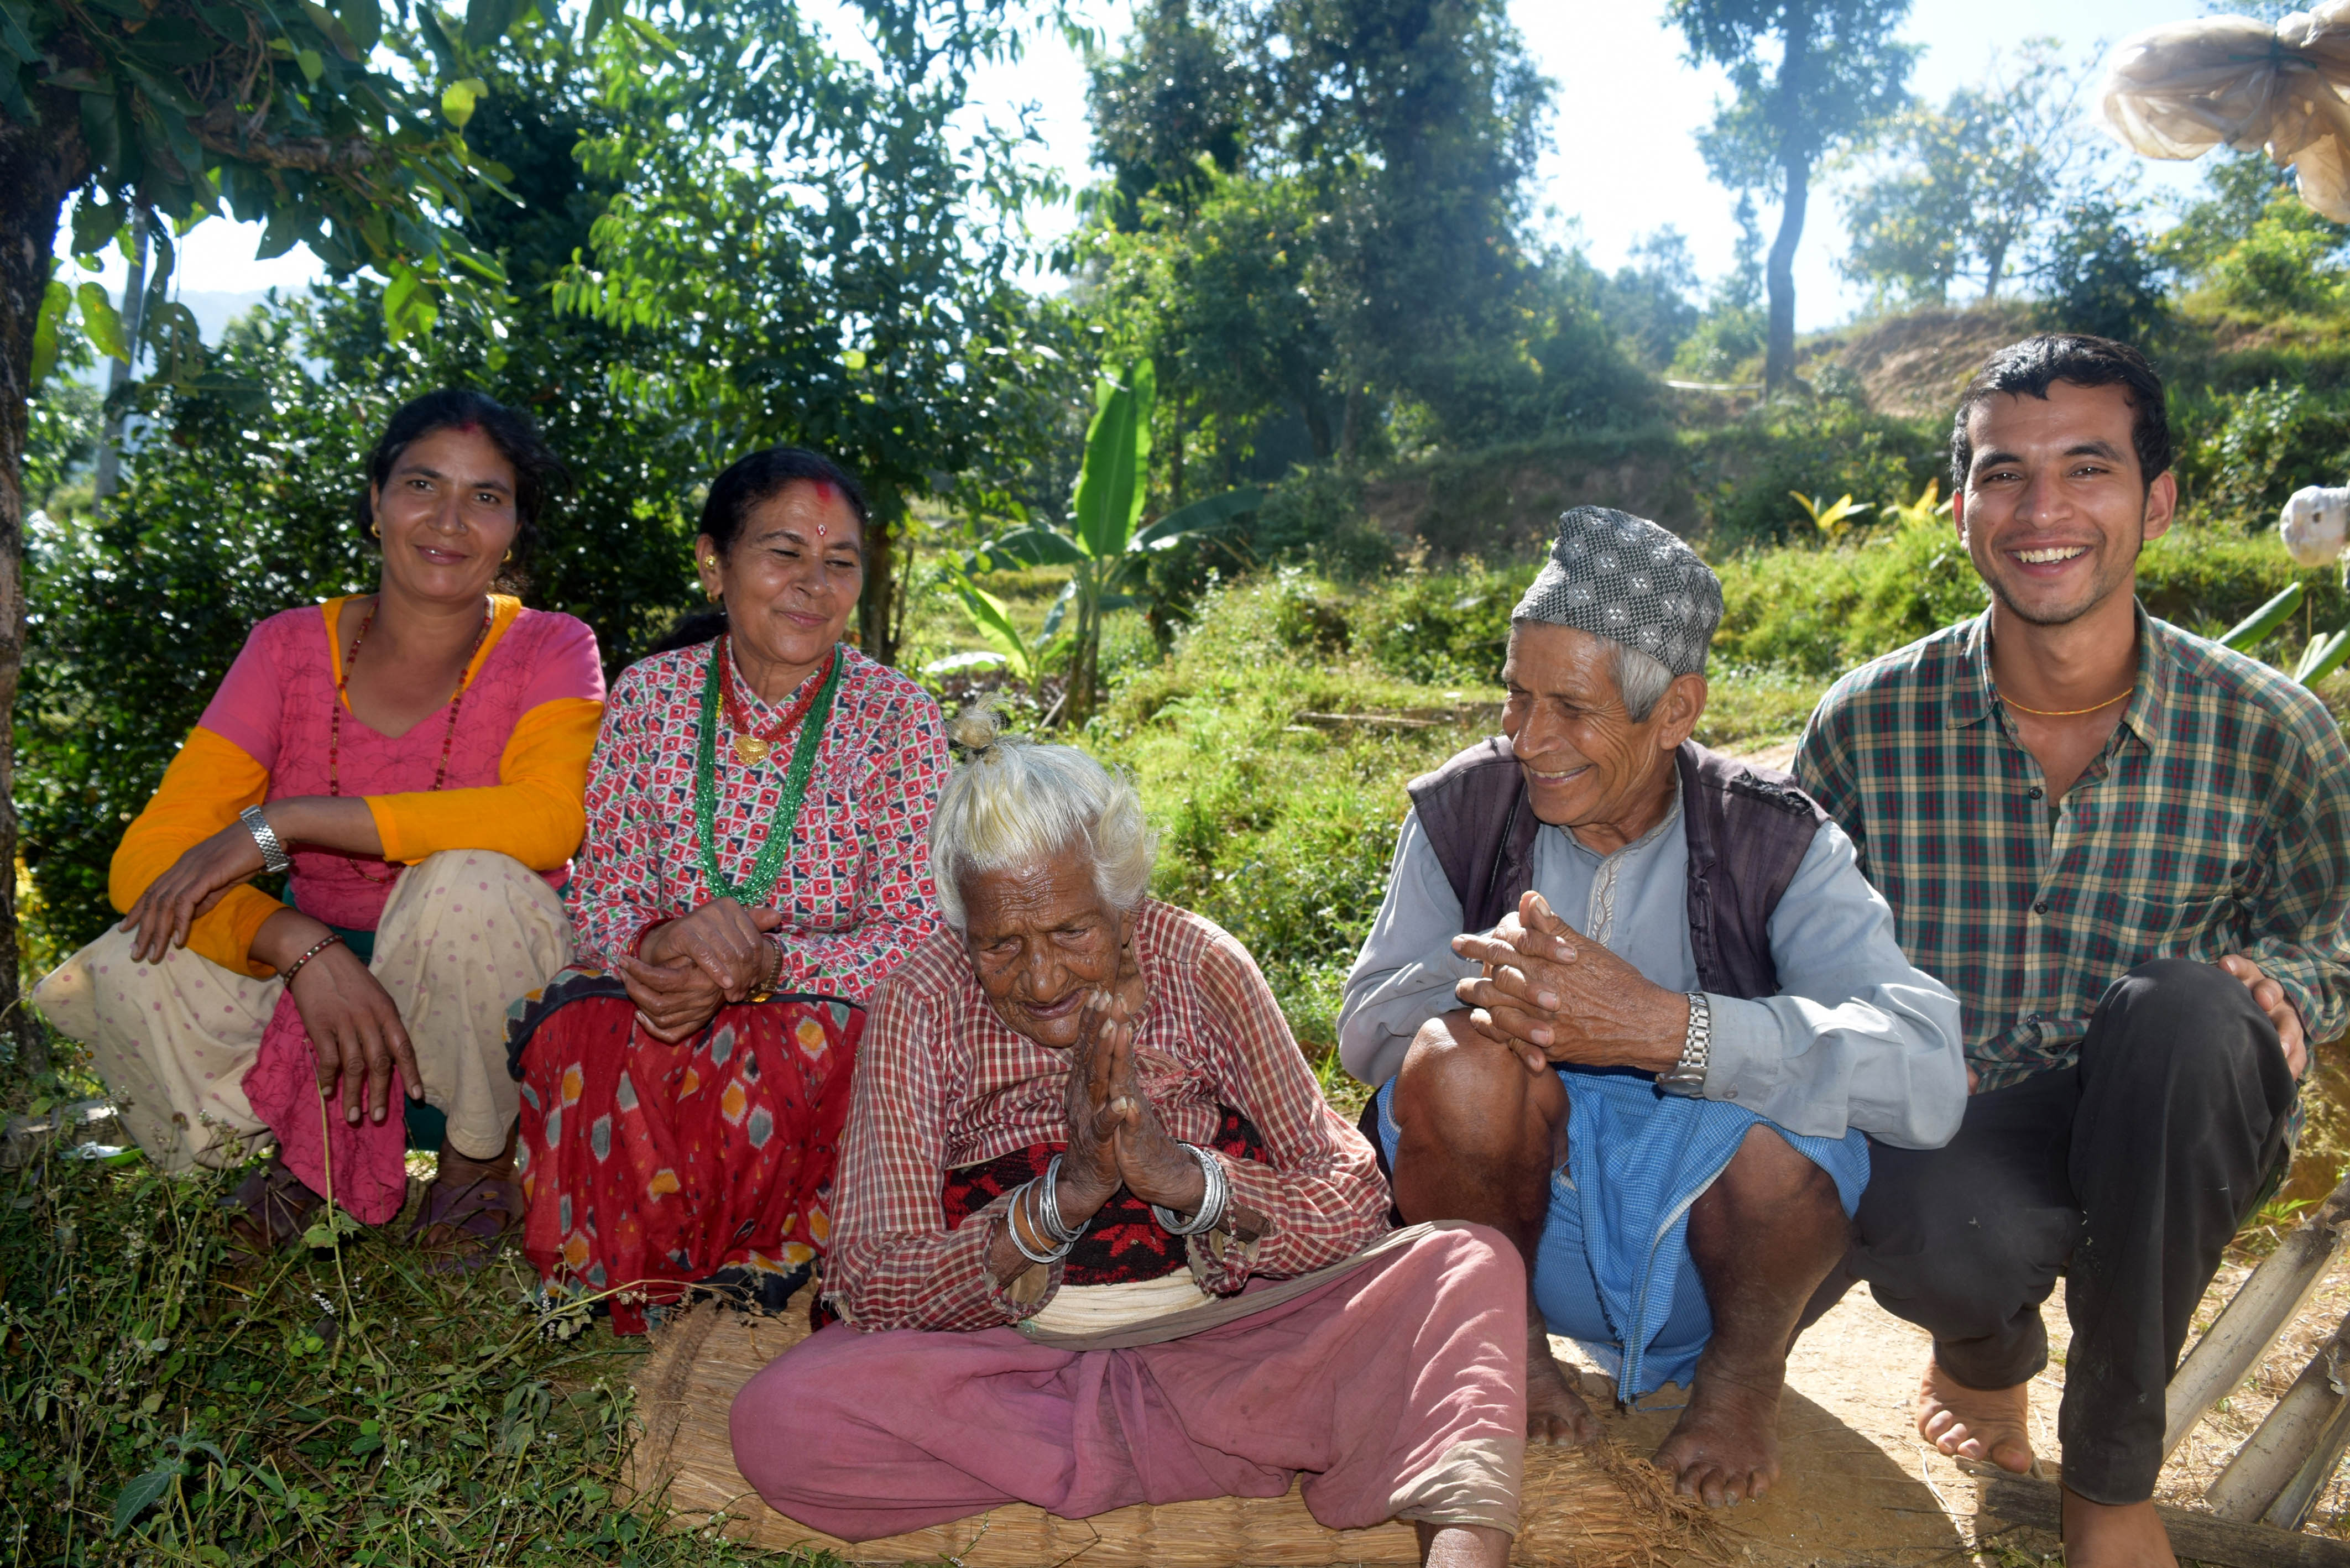 Batuli Lamichhane with her family